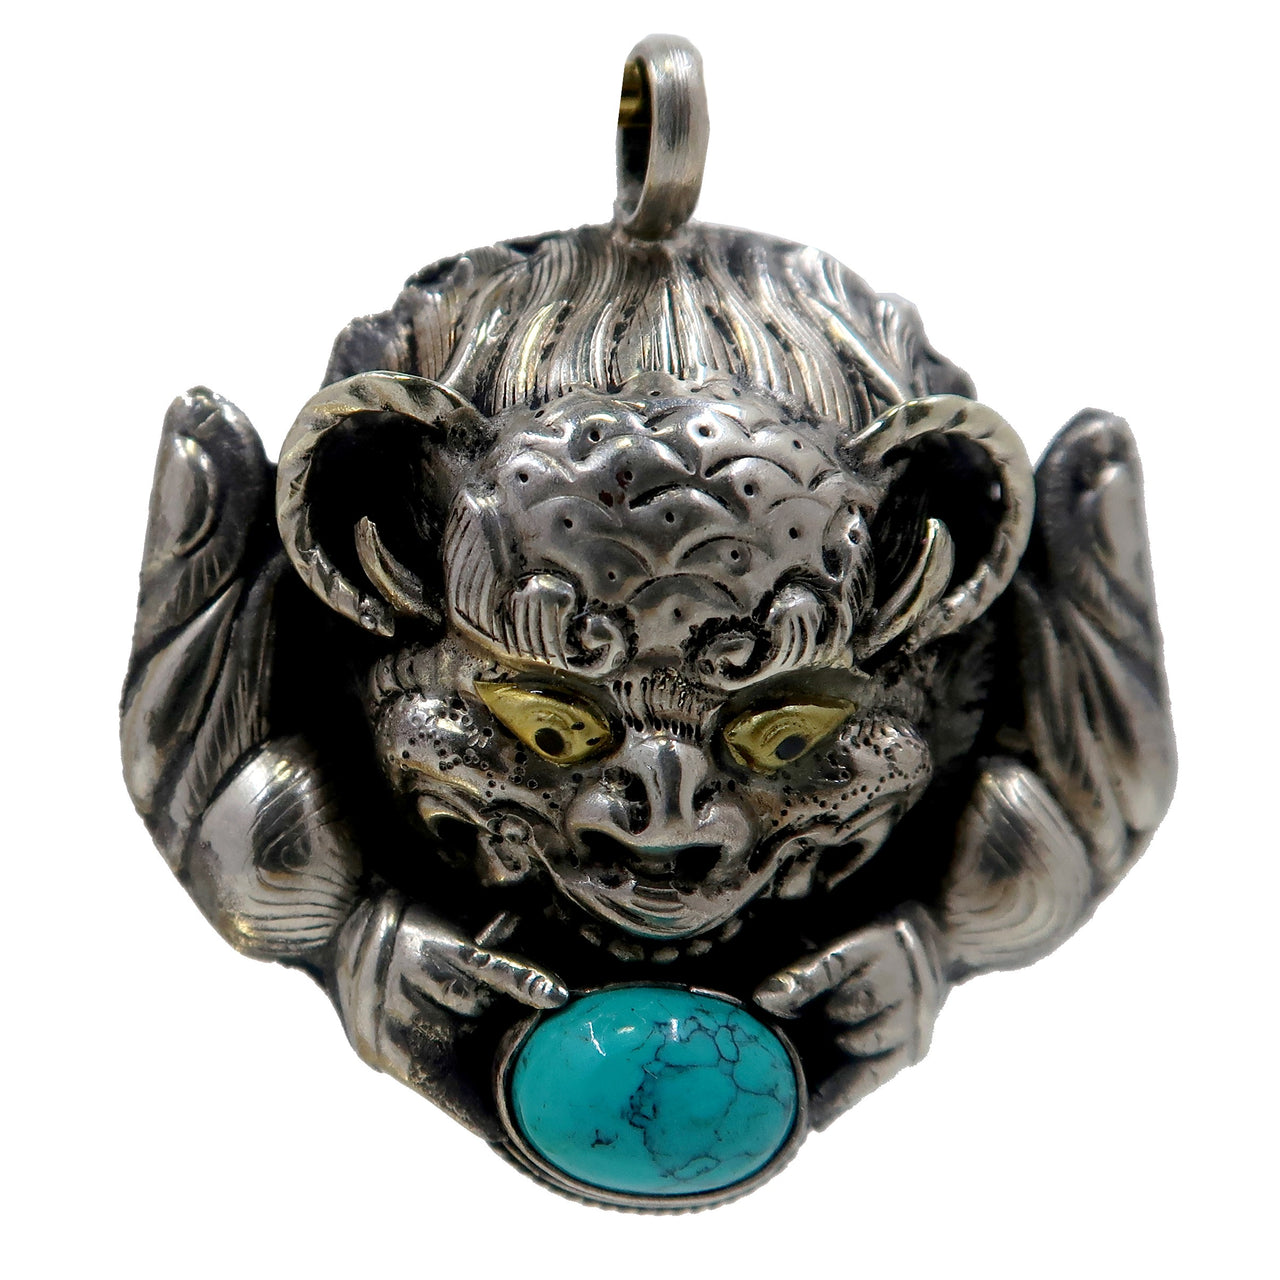 "Dragon Pendant 1.9"" Boutique Tibetan Silver Green Gemstone Unisex Beast Charm B01 (Turquoise)"